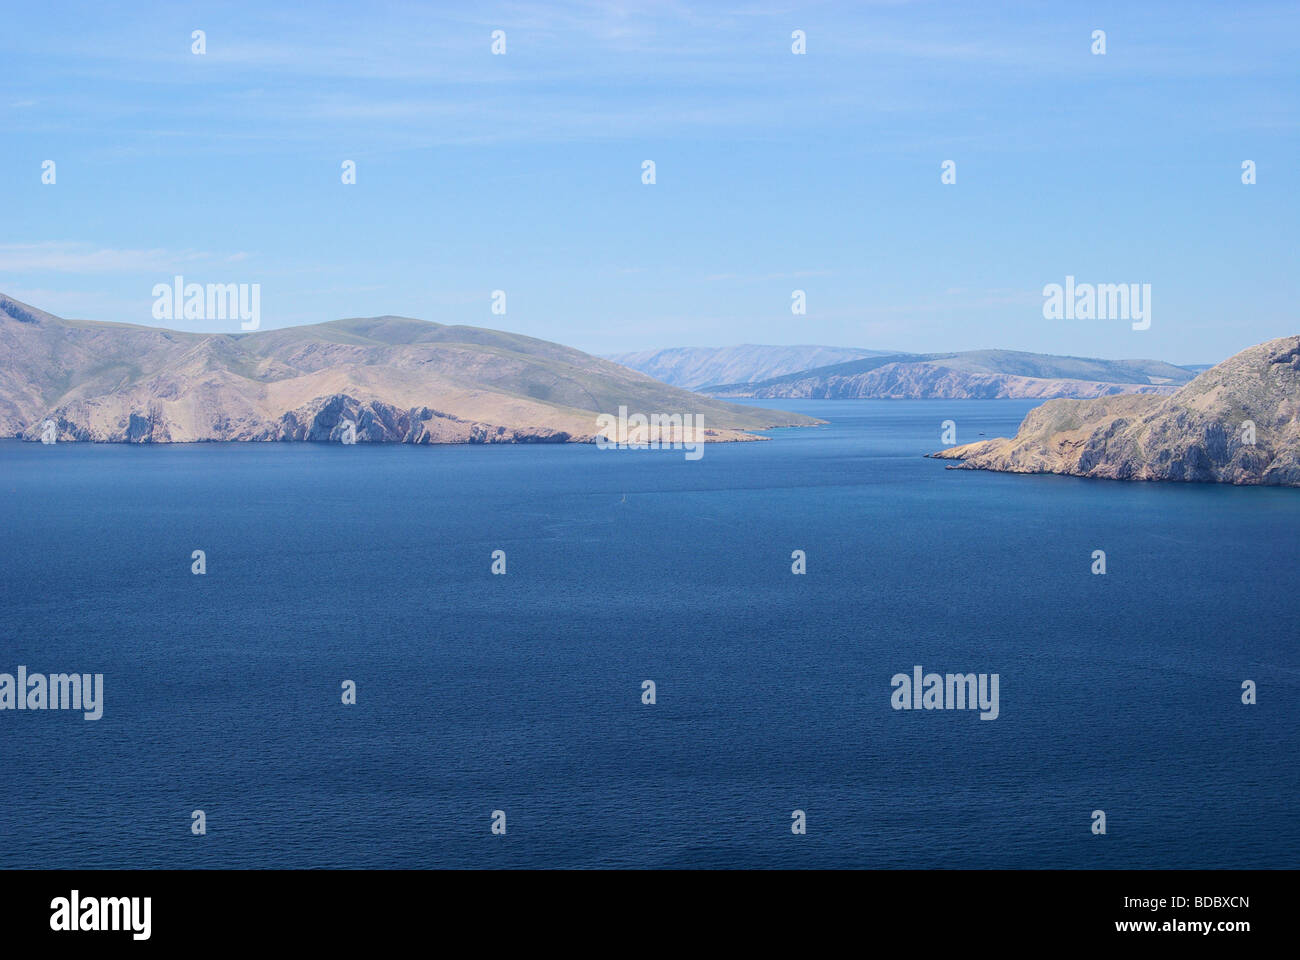 Baska 09 - Stock Image